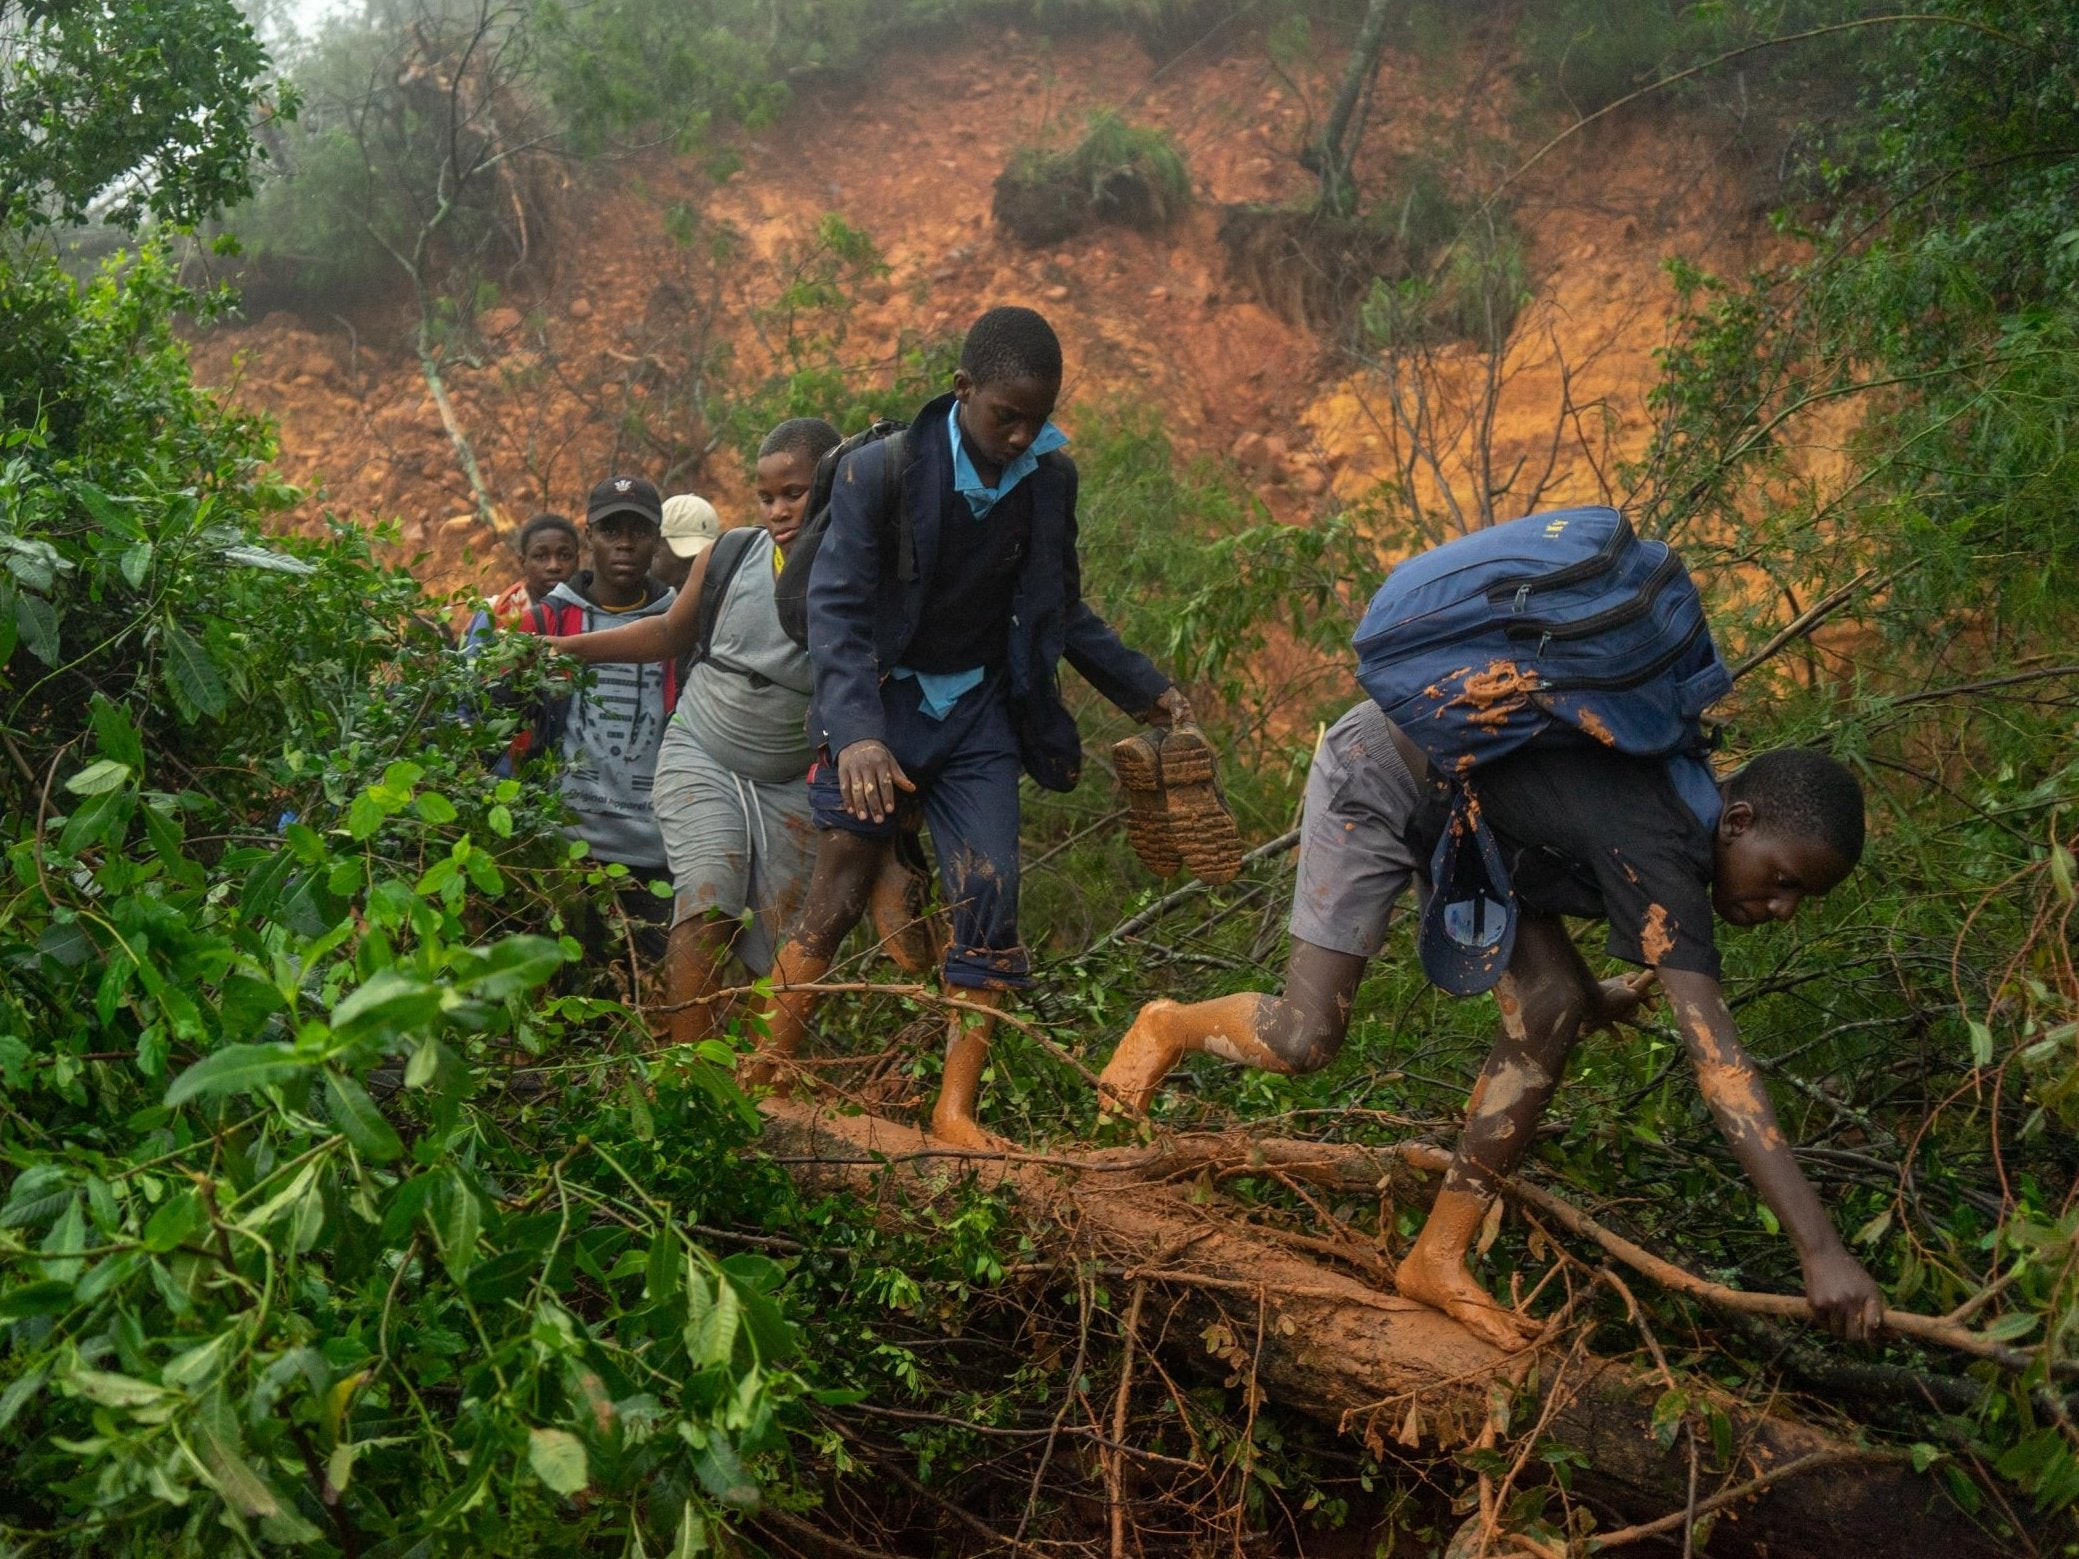 Malawi - latest news, breaking stories and comment - The